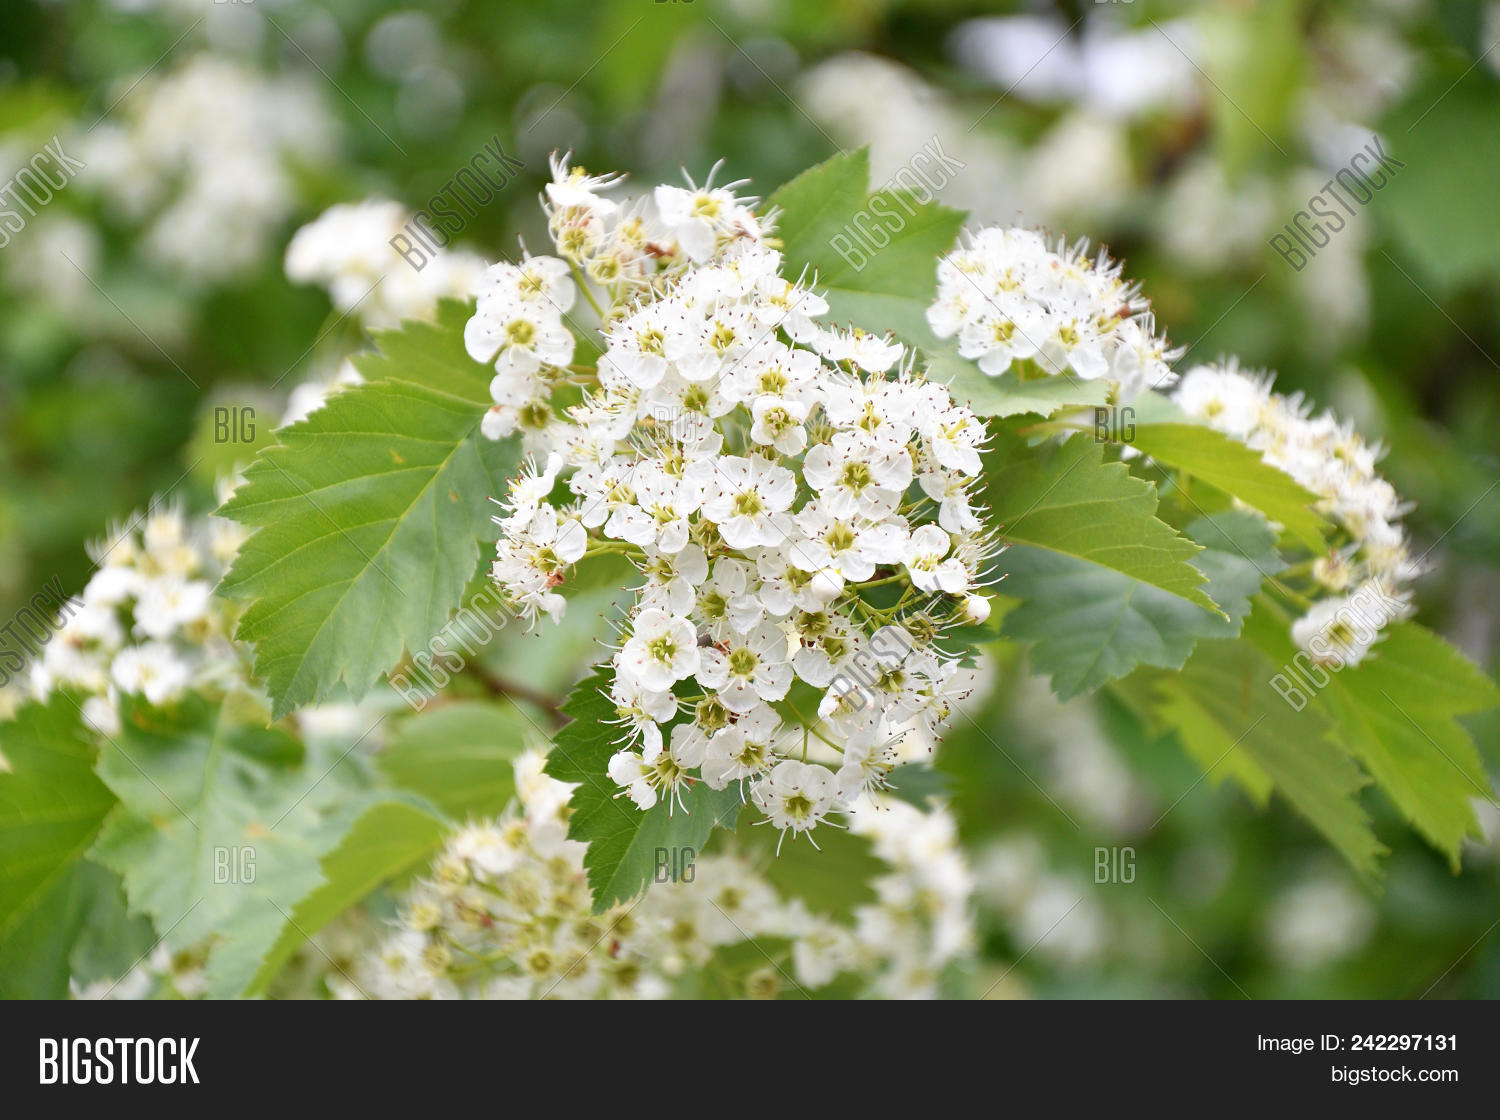 White Hawthorn Flowers Image Photo Free Trial Bigstock